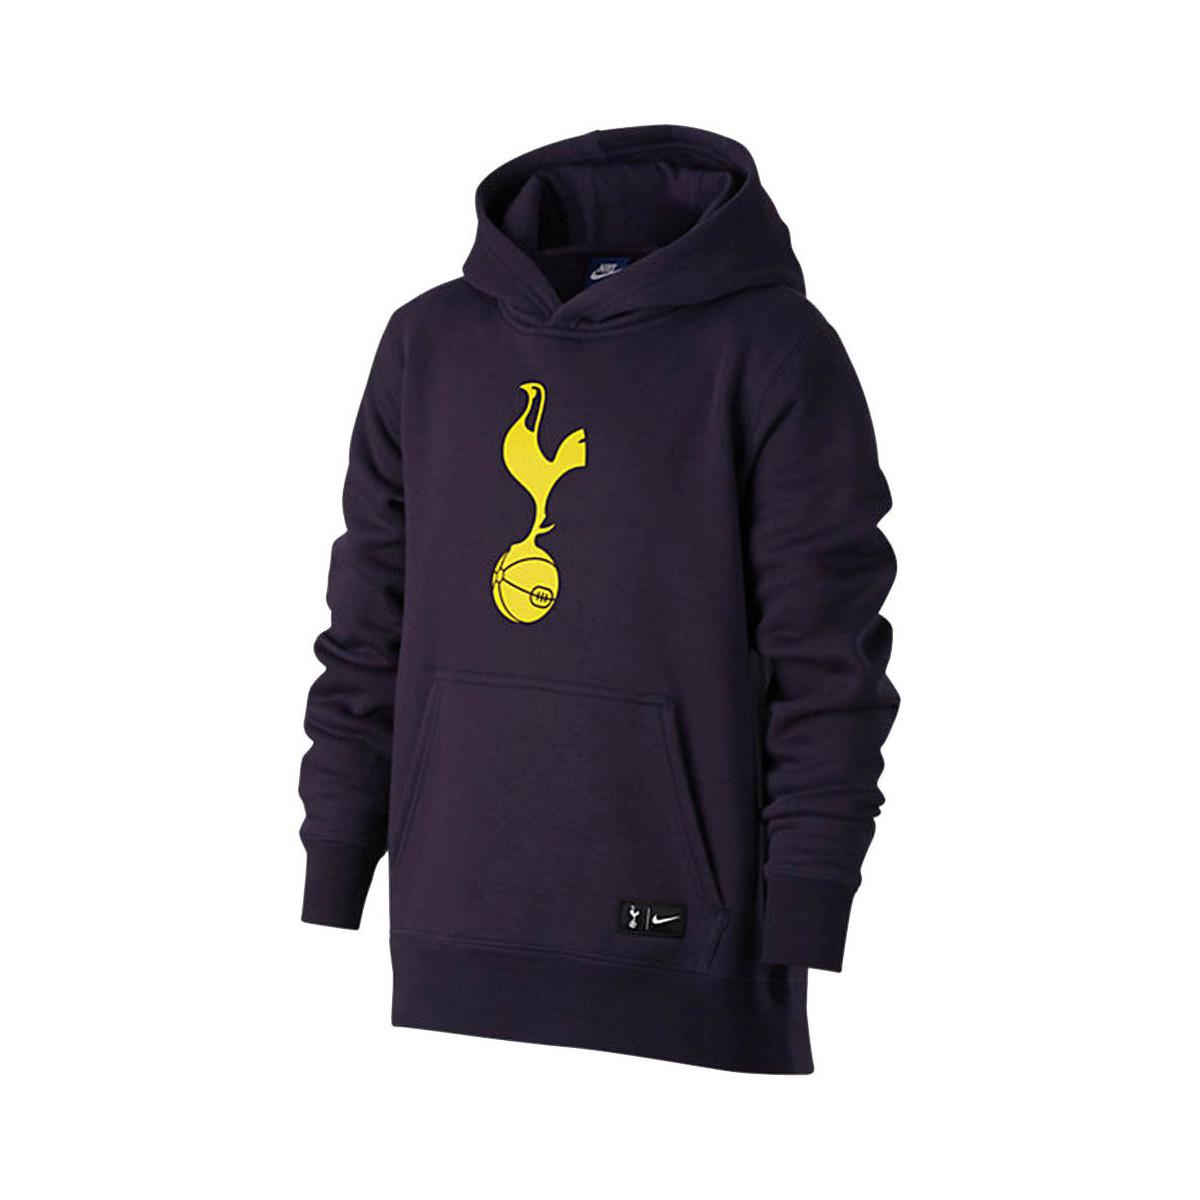 Nike 2017-2018 Tottenham Core Hooded Top - Kids Women s Sweatshirt ... 7f6b2e8143